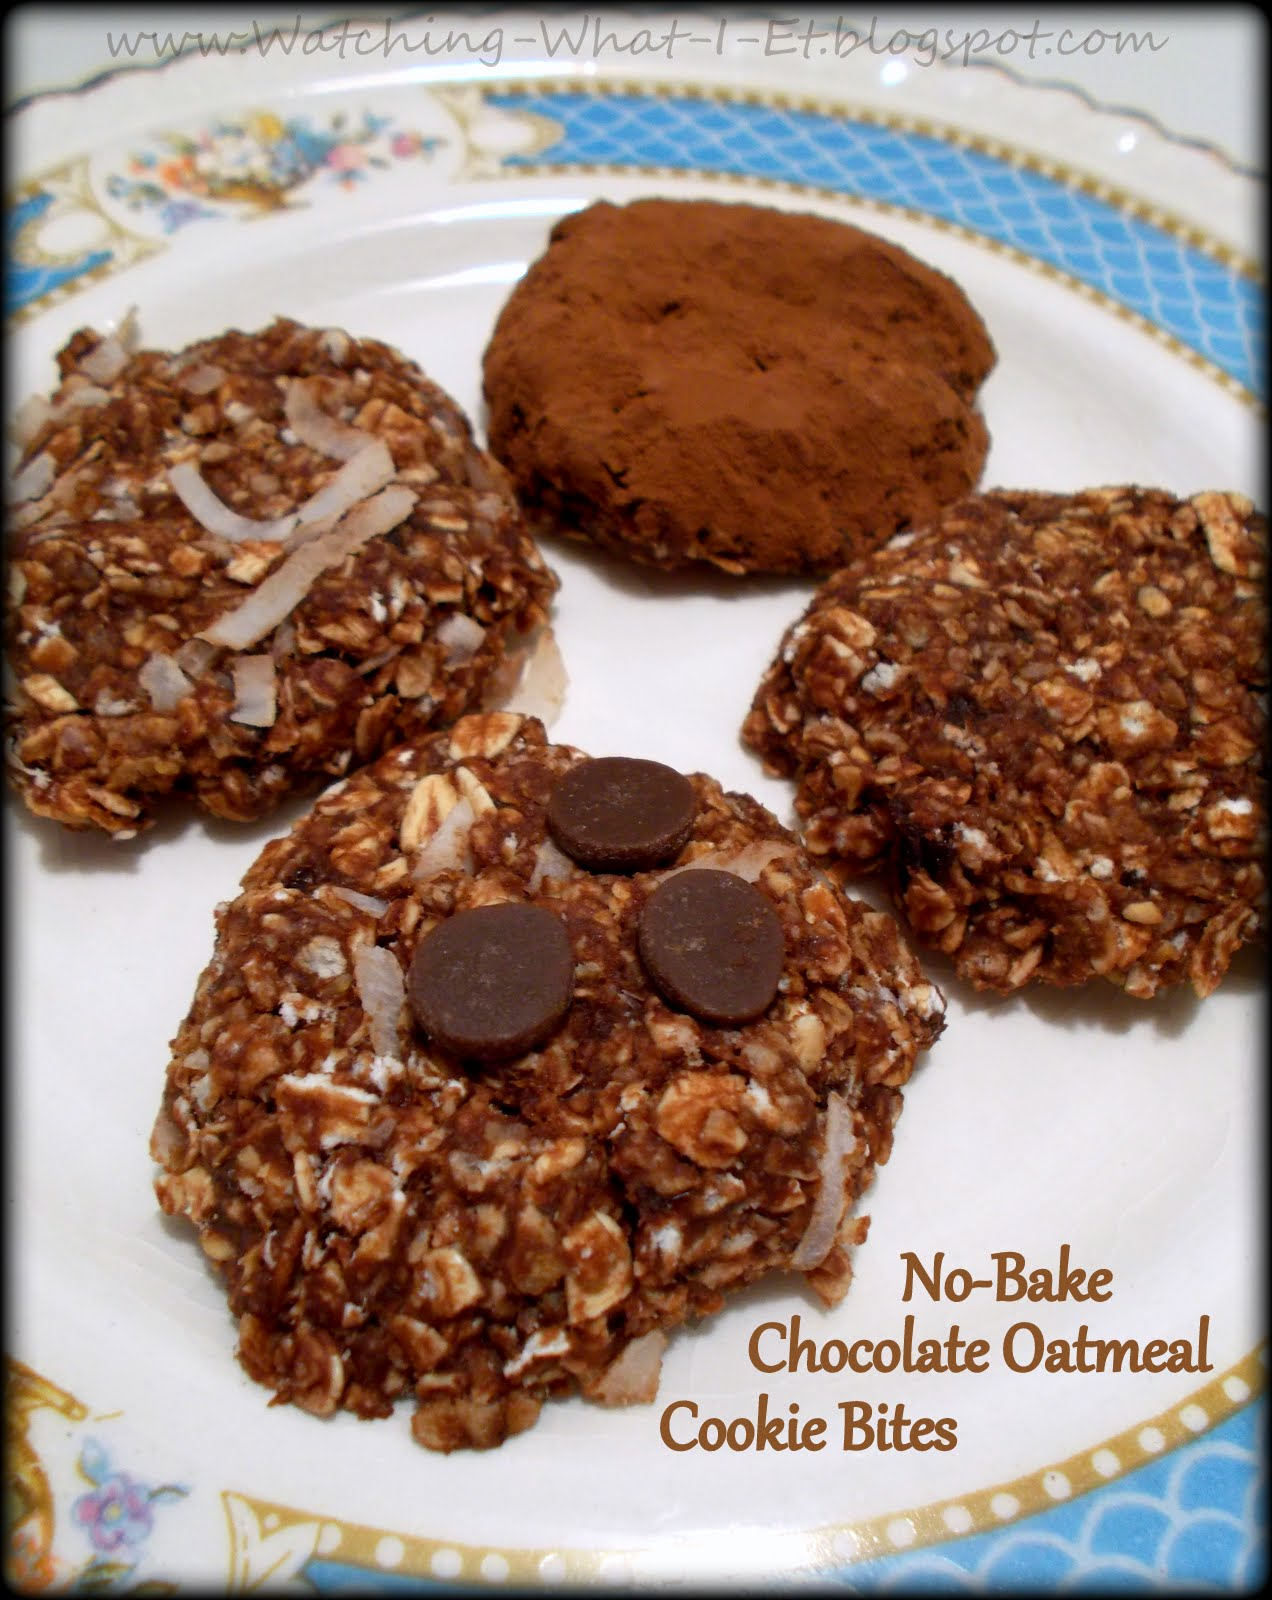 What I Eat: Clean Eating No-Bake Chocolate Oatmeal Cookie Bites